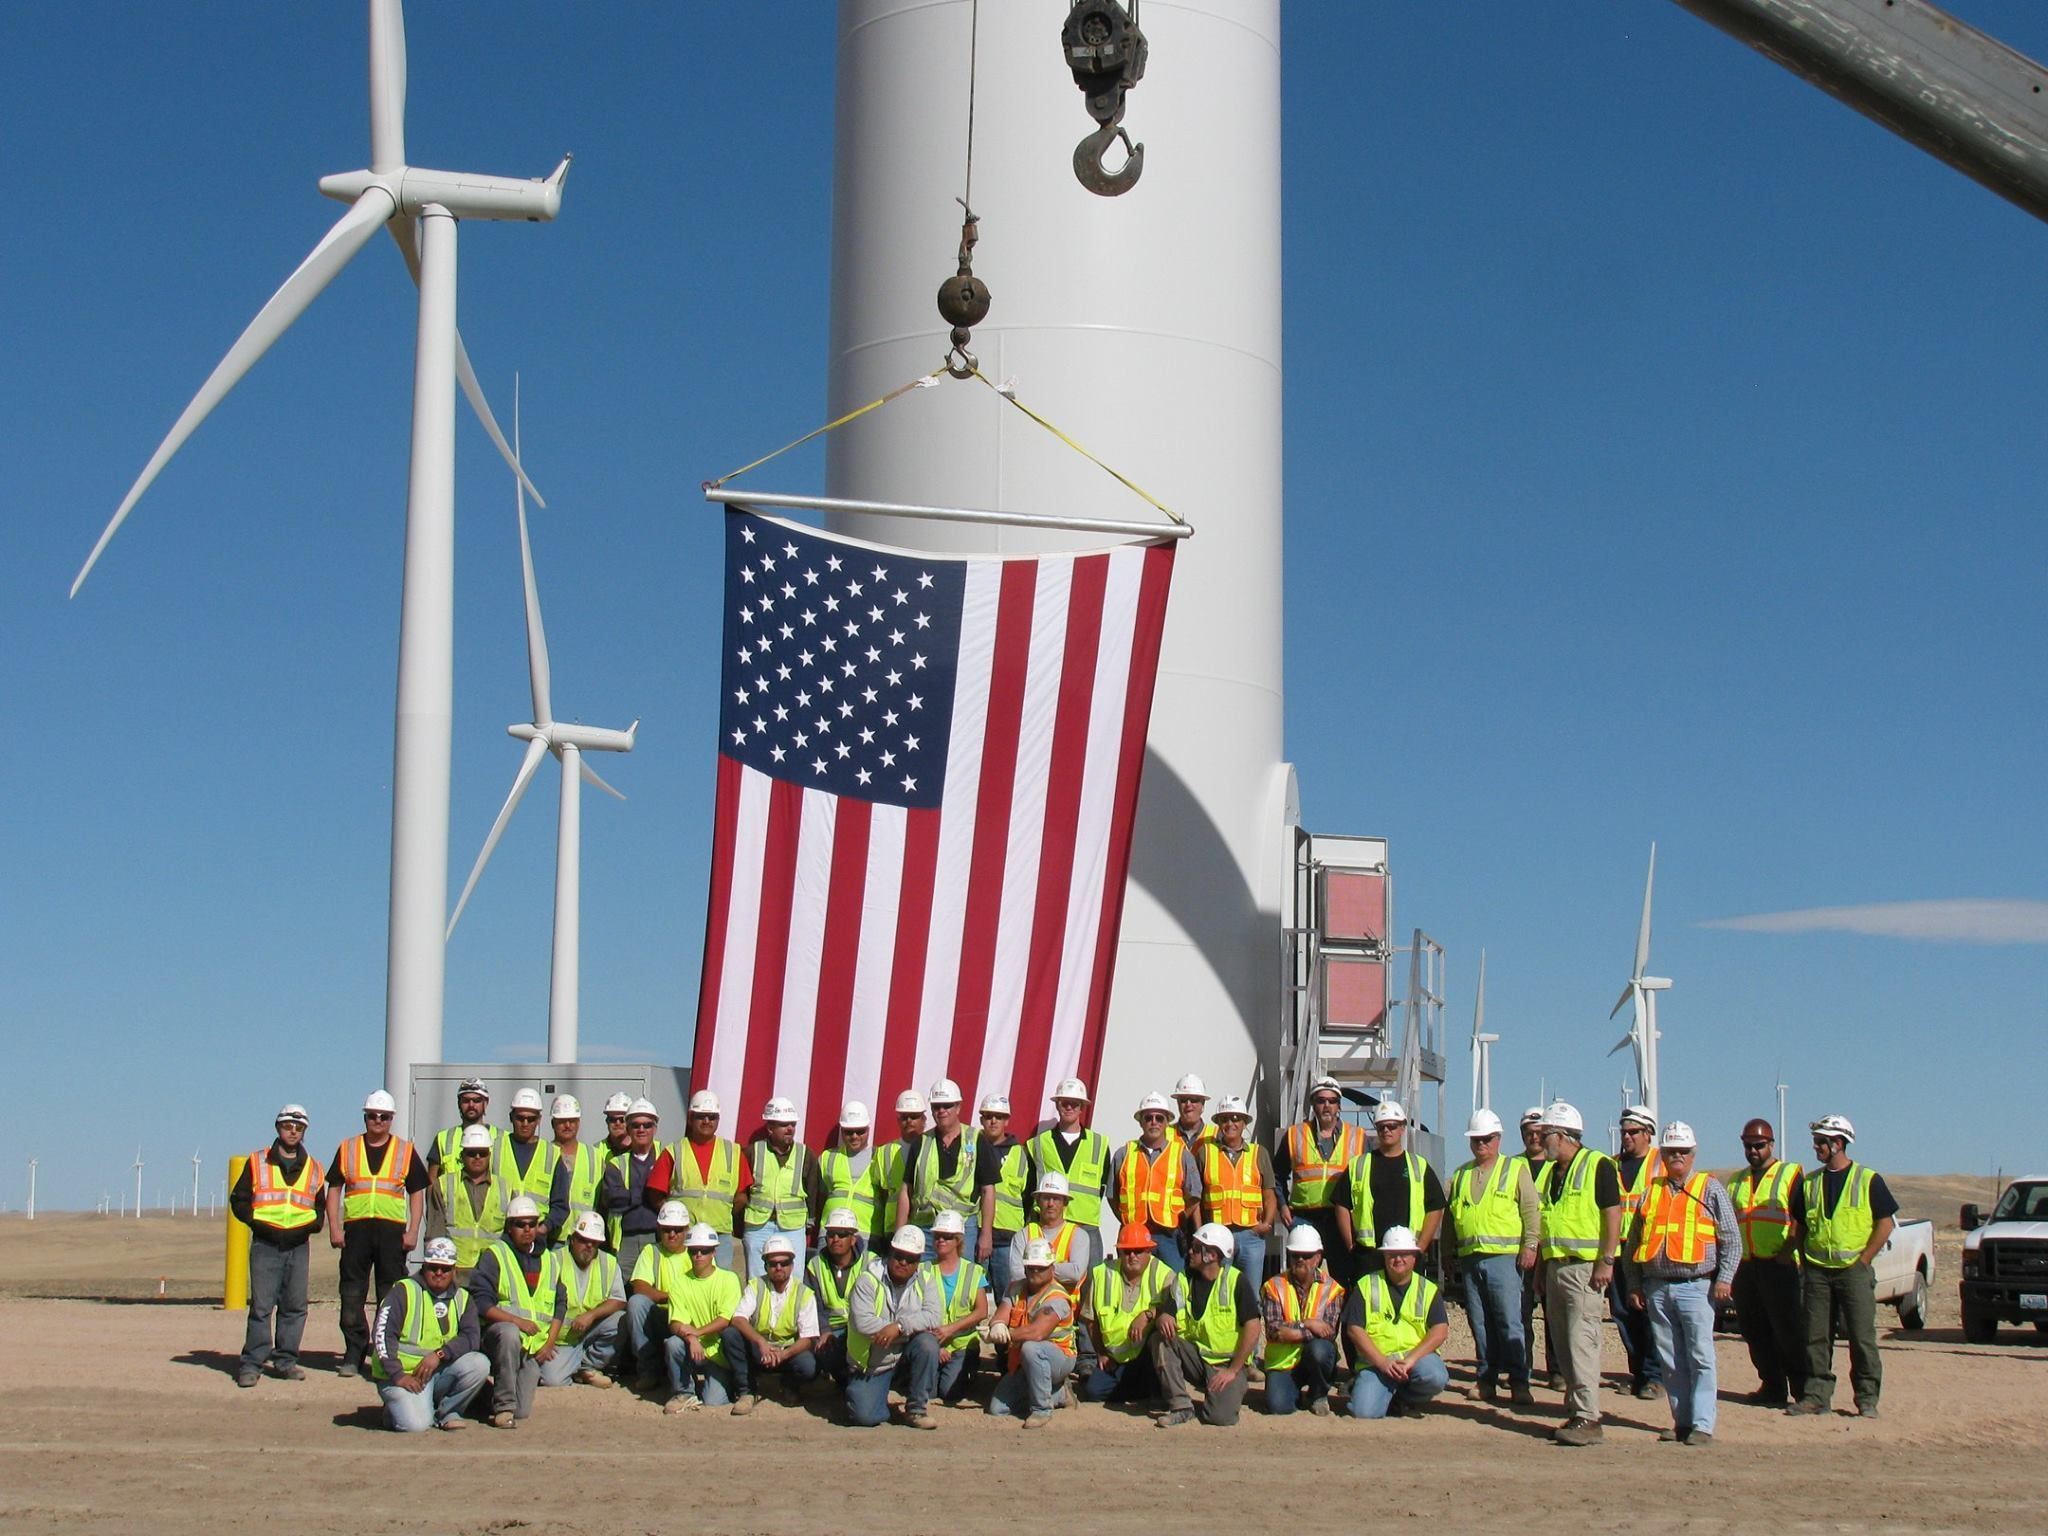 Xcel Energy wind projects deliver for customers and communities